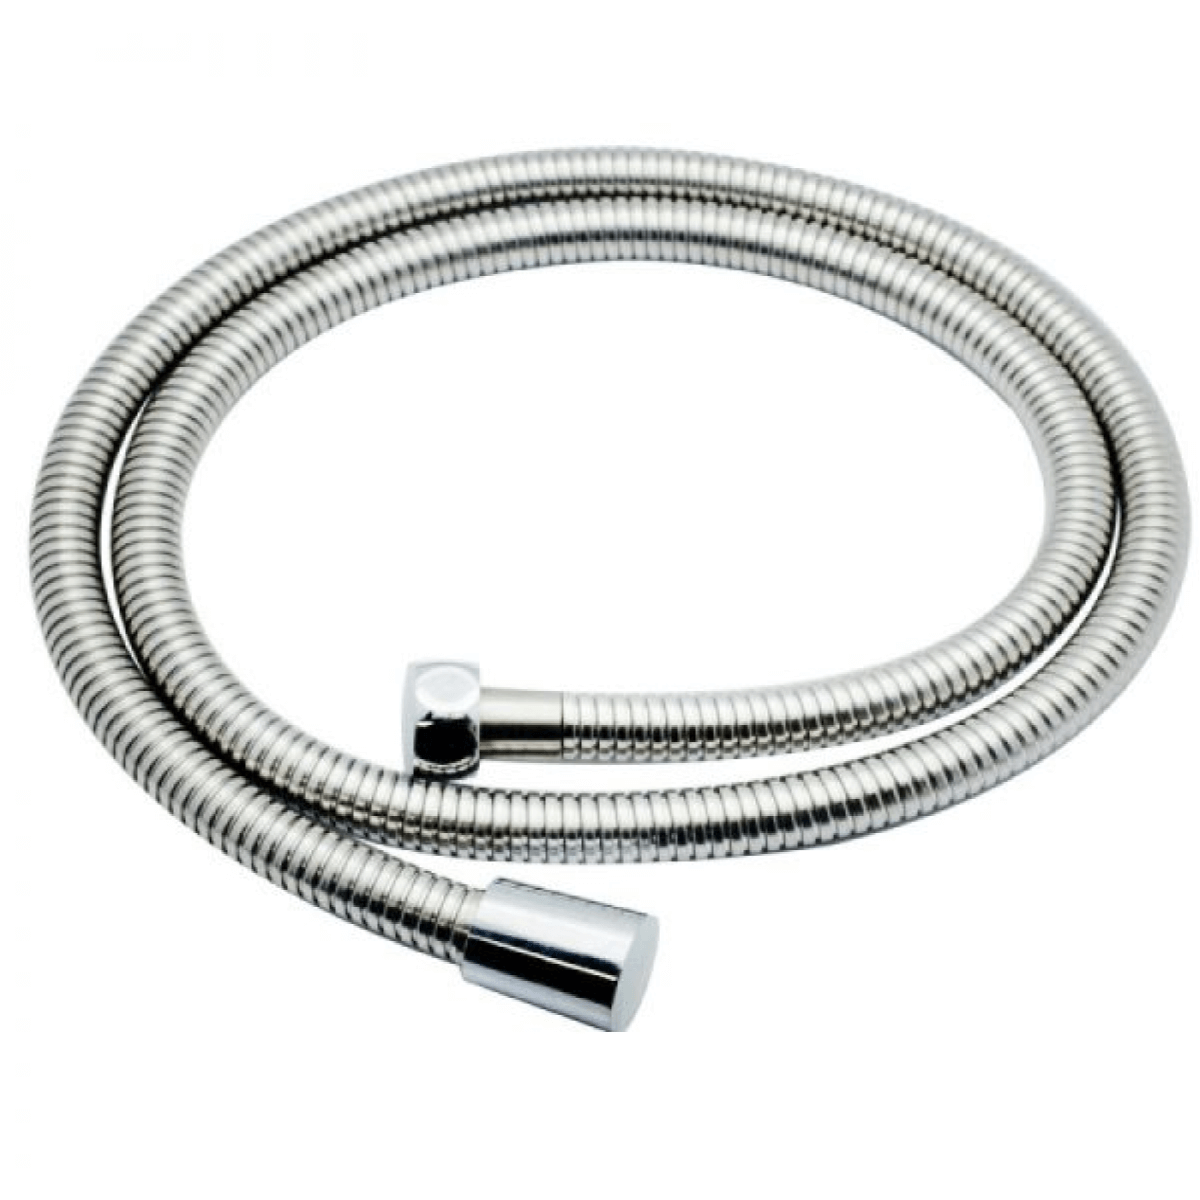 AER Stainless Steel Flexible Hose (FHM 125 SA F)